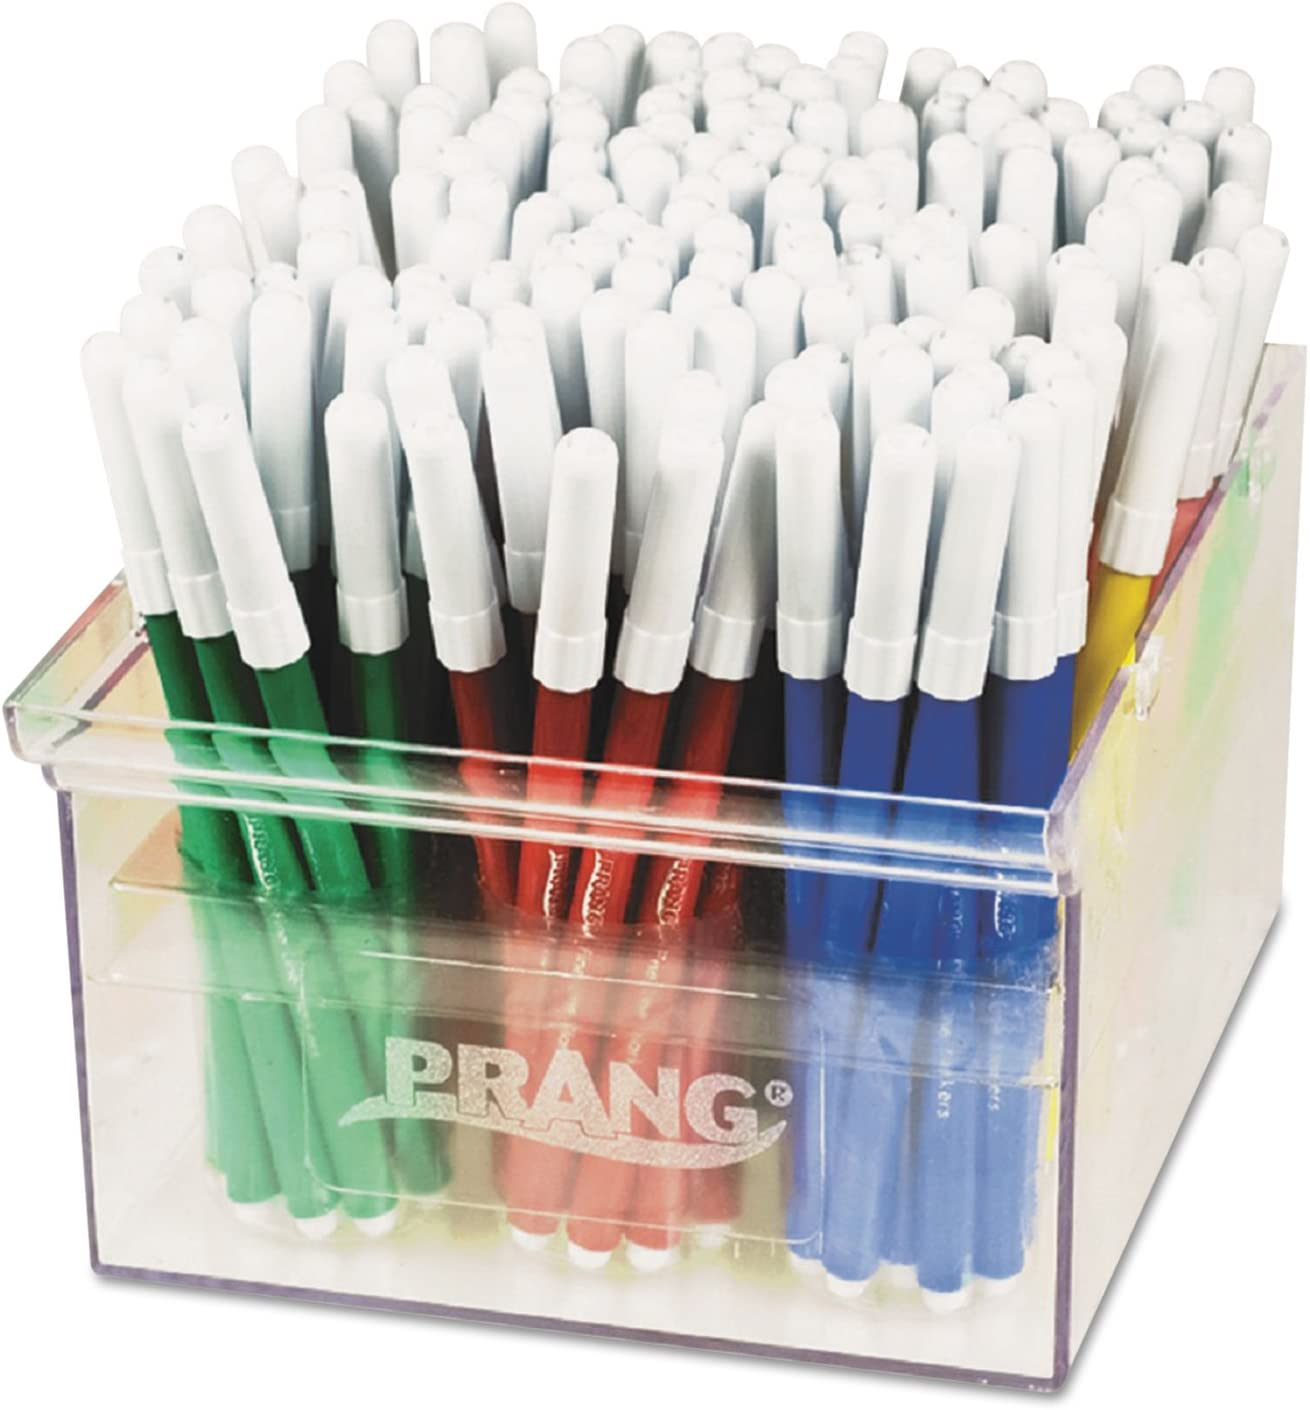 Prang 80744 Prang Markers, Fine Point, 12 Assorted Colors